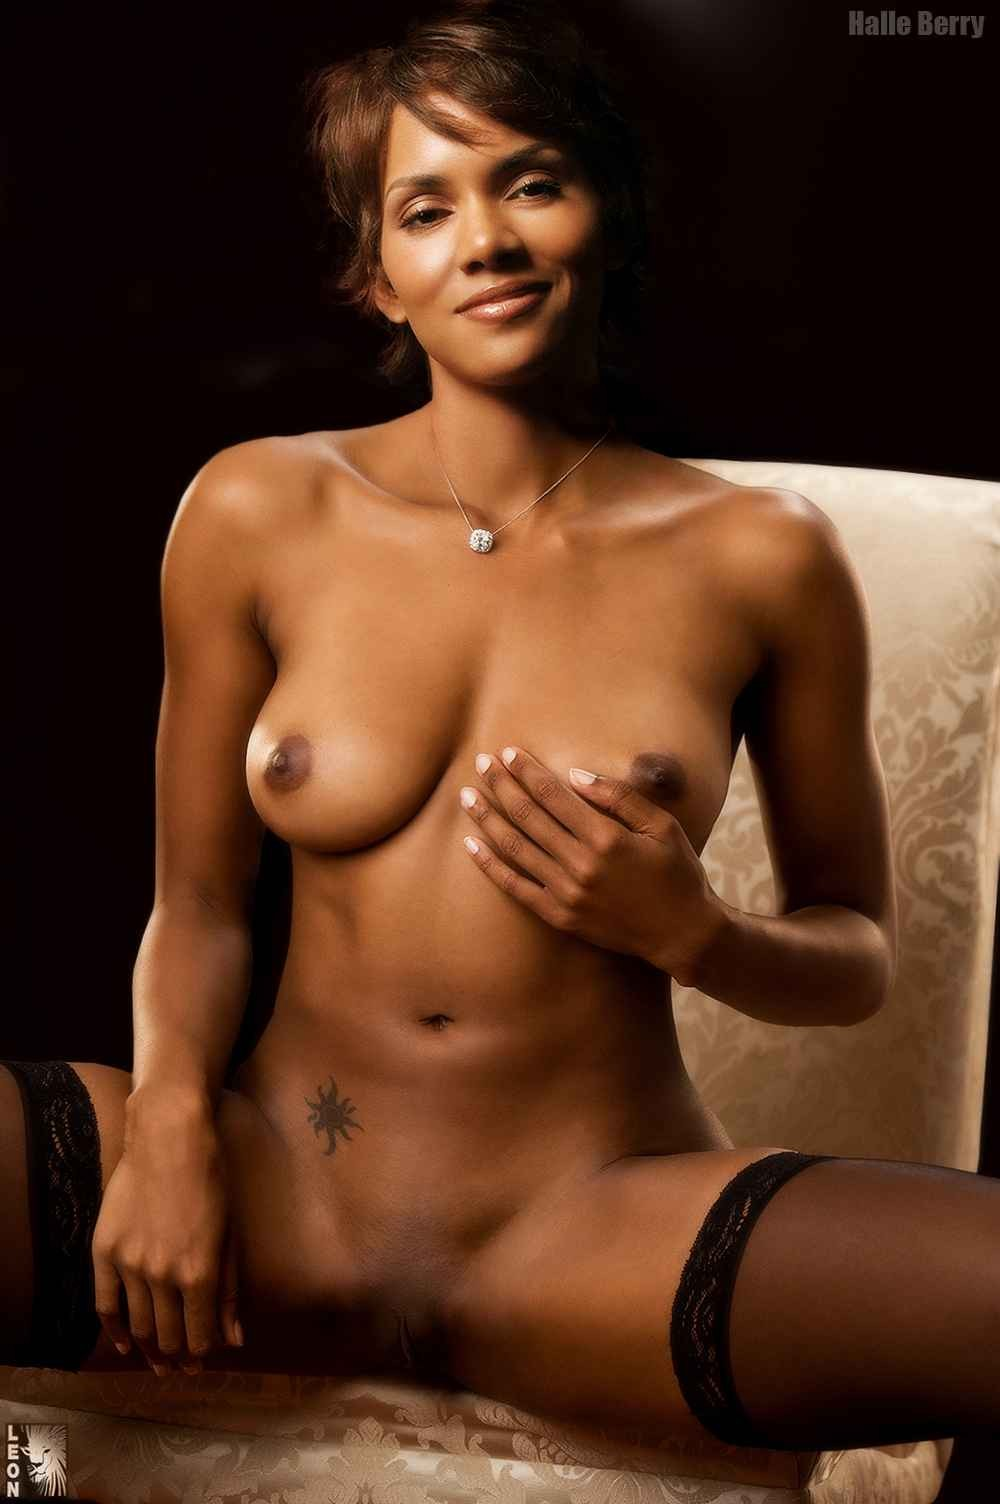 berry pictures Halle nude